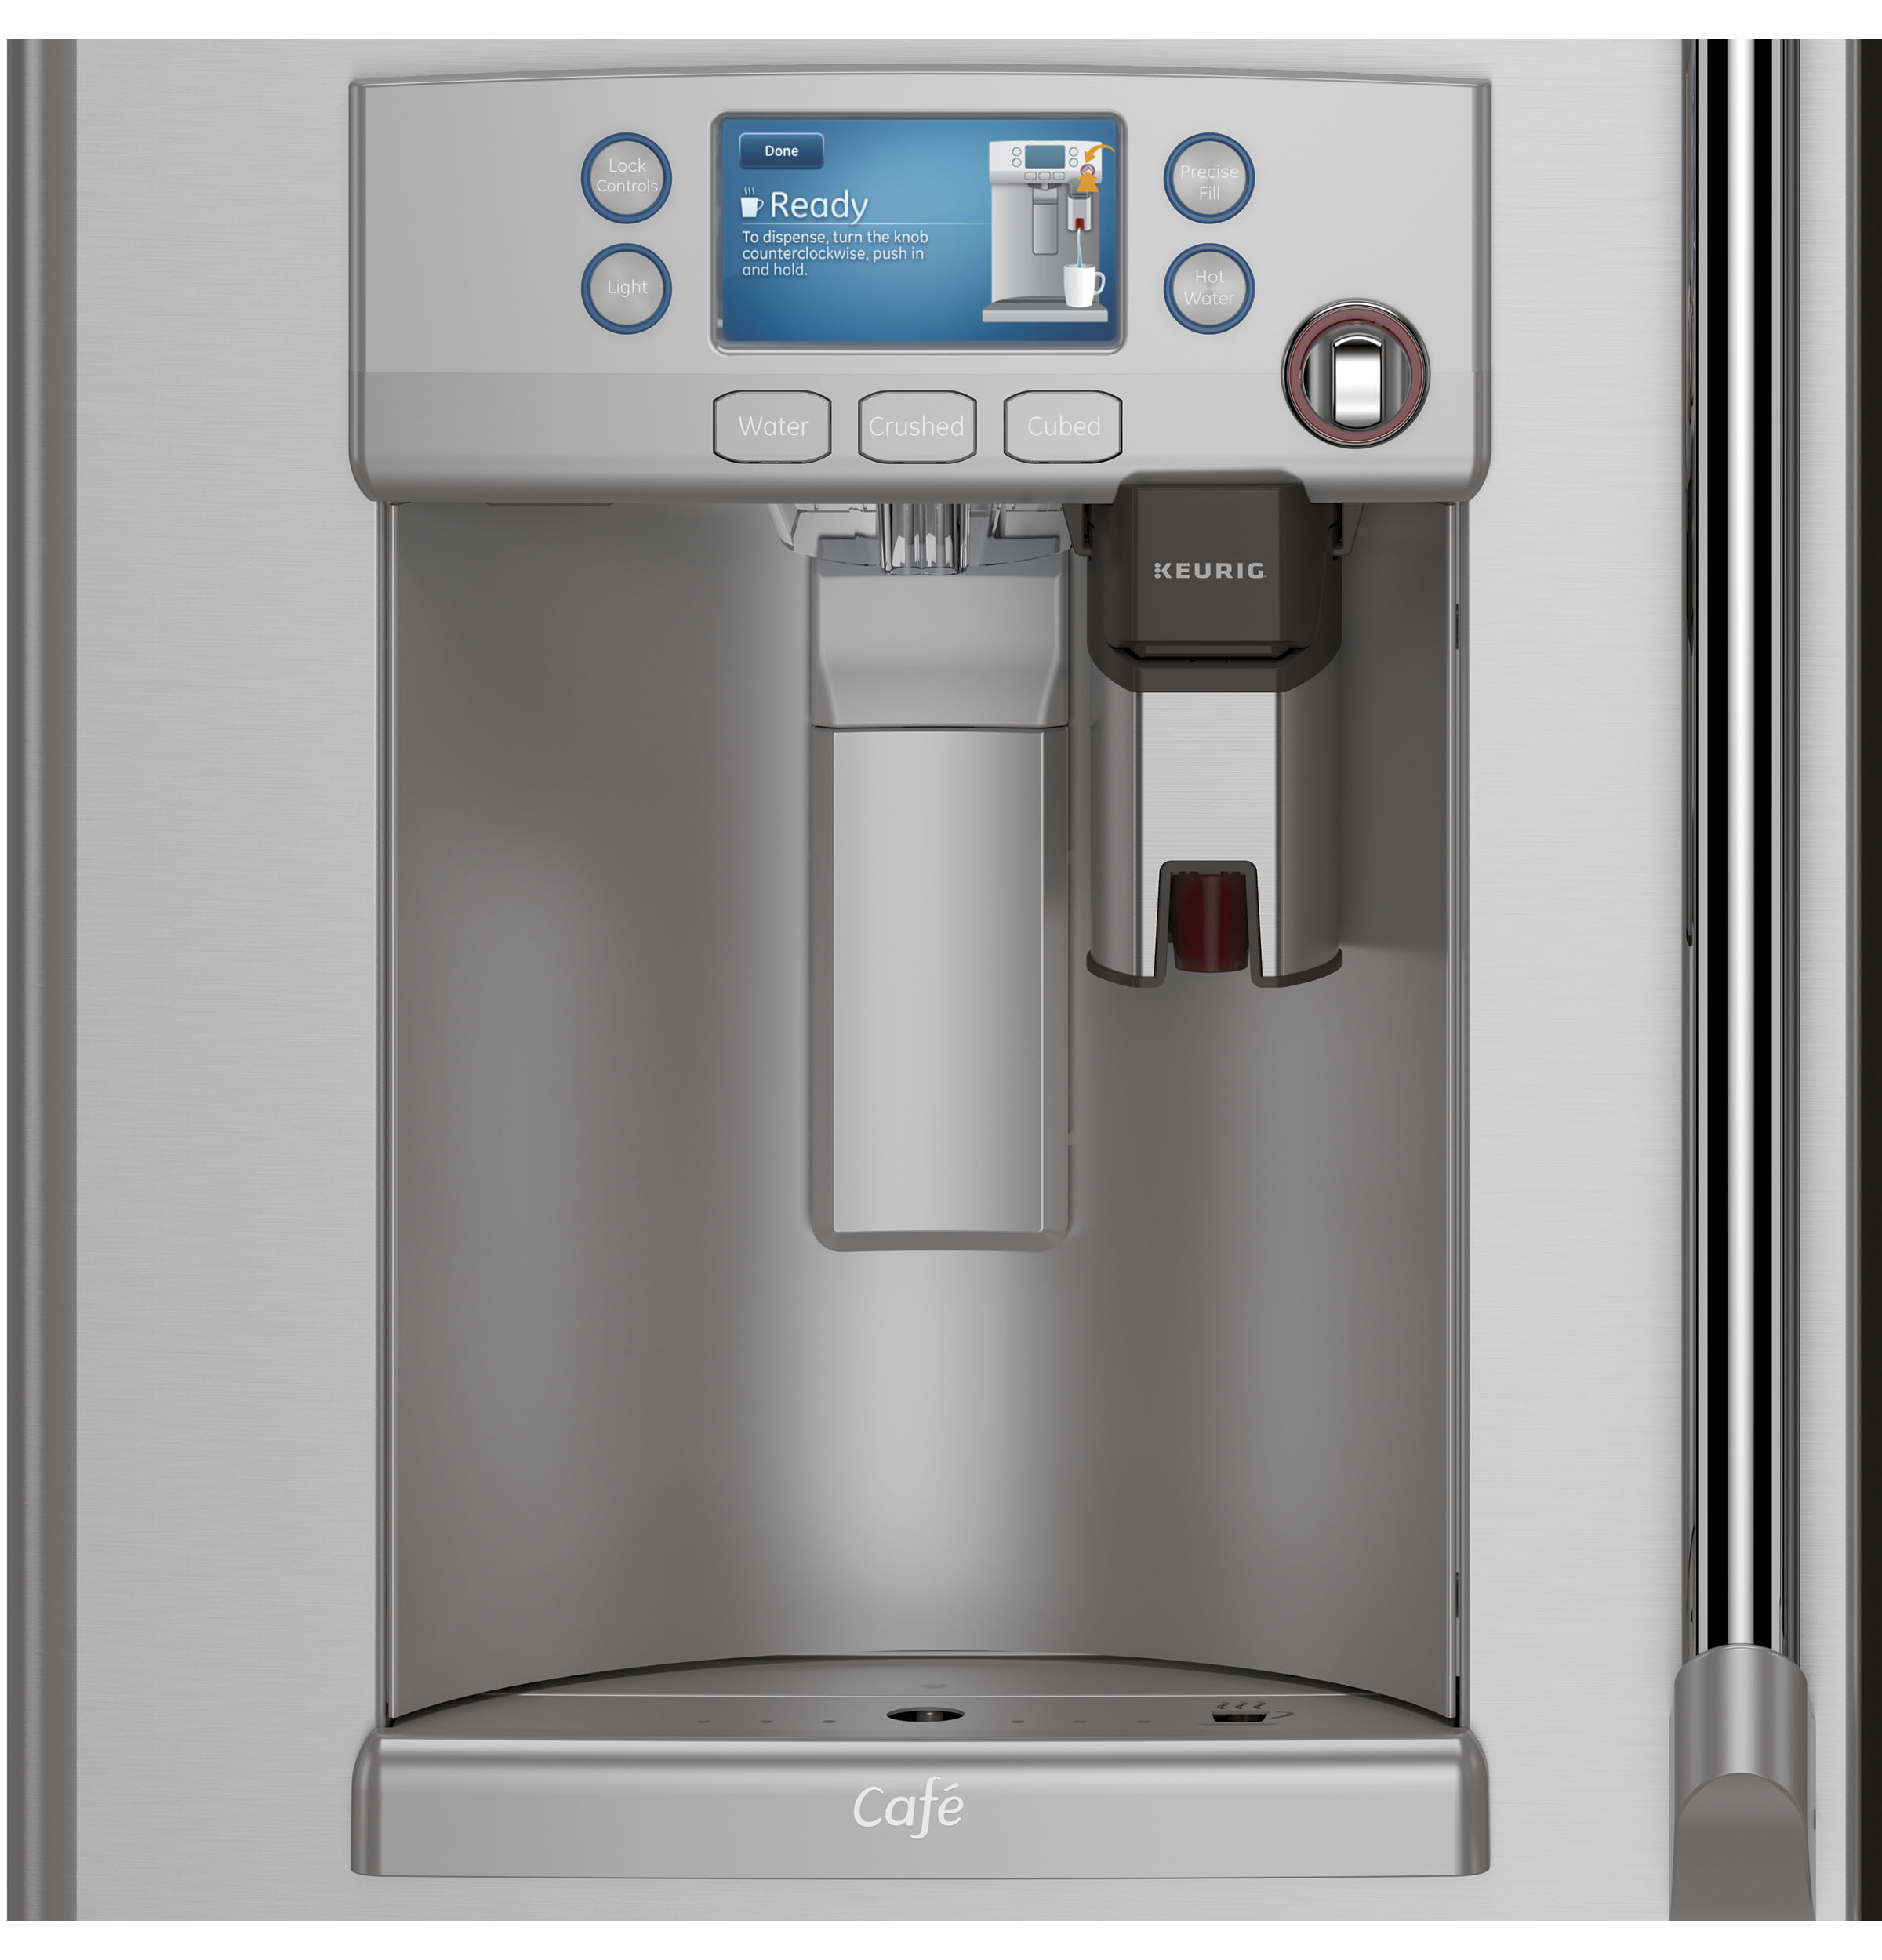 GE Appliances and Keurig Brew Up the Next Big Thing in Refrigeration GE Appliances Pressroom